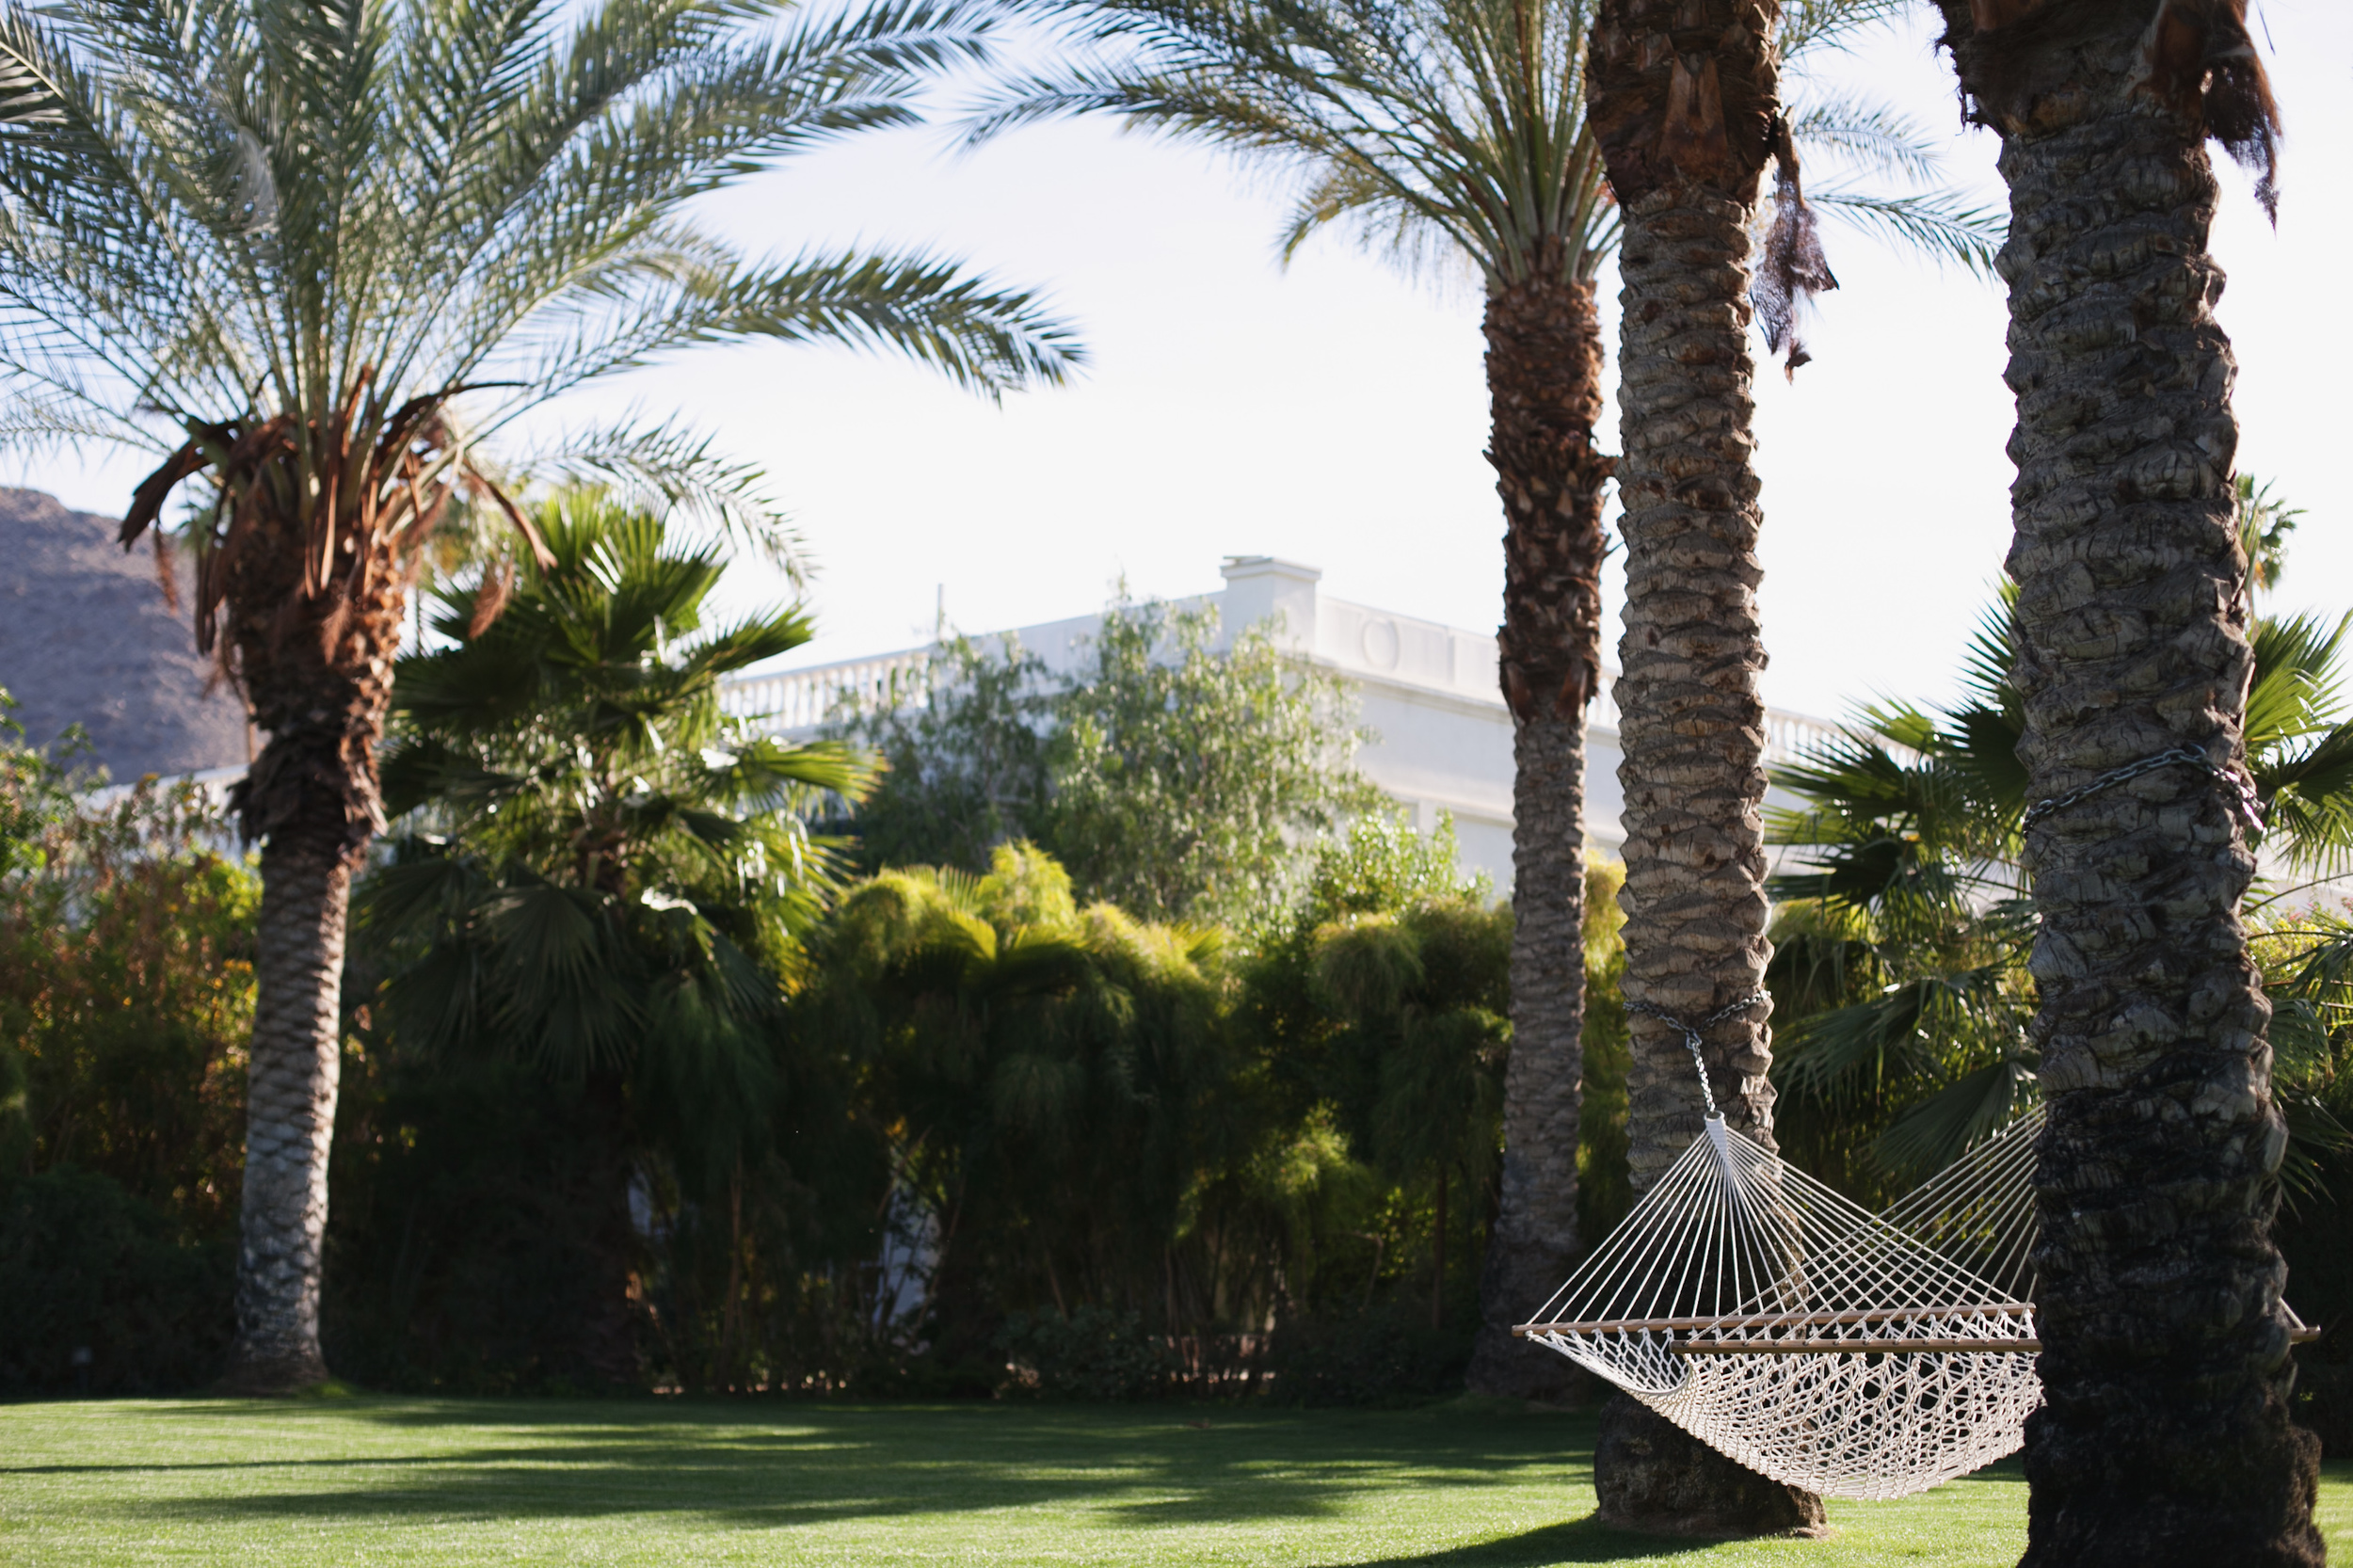 The Parker in Palm Springs by Naomi Yamada